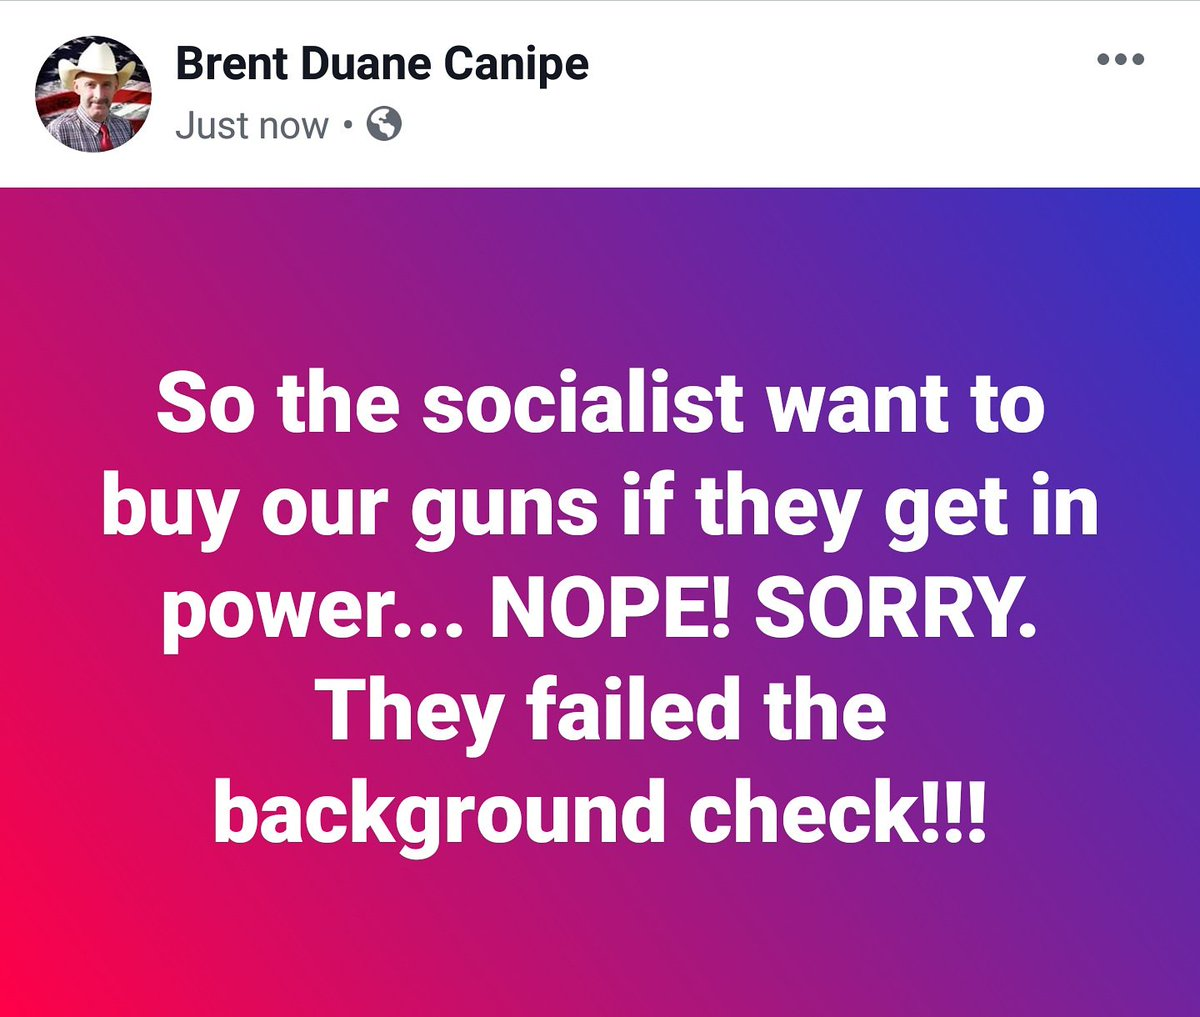 test Twitter Media - So the socialist want to buy our guns if they get in power... NOPE! SORRY. They failed the background check!!! #Trump #trumpmemes #trump2020 #trumpsupporters #MAGA #2A #KAG #KAG2020 #KeepAmericaGreat https://t.co/z675plmr4U